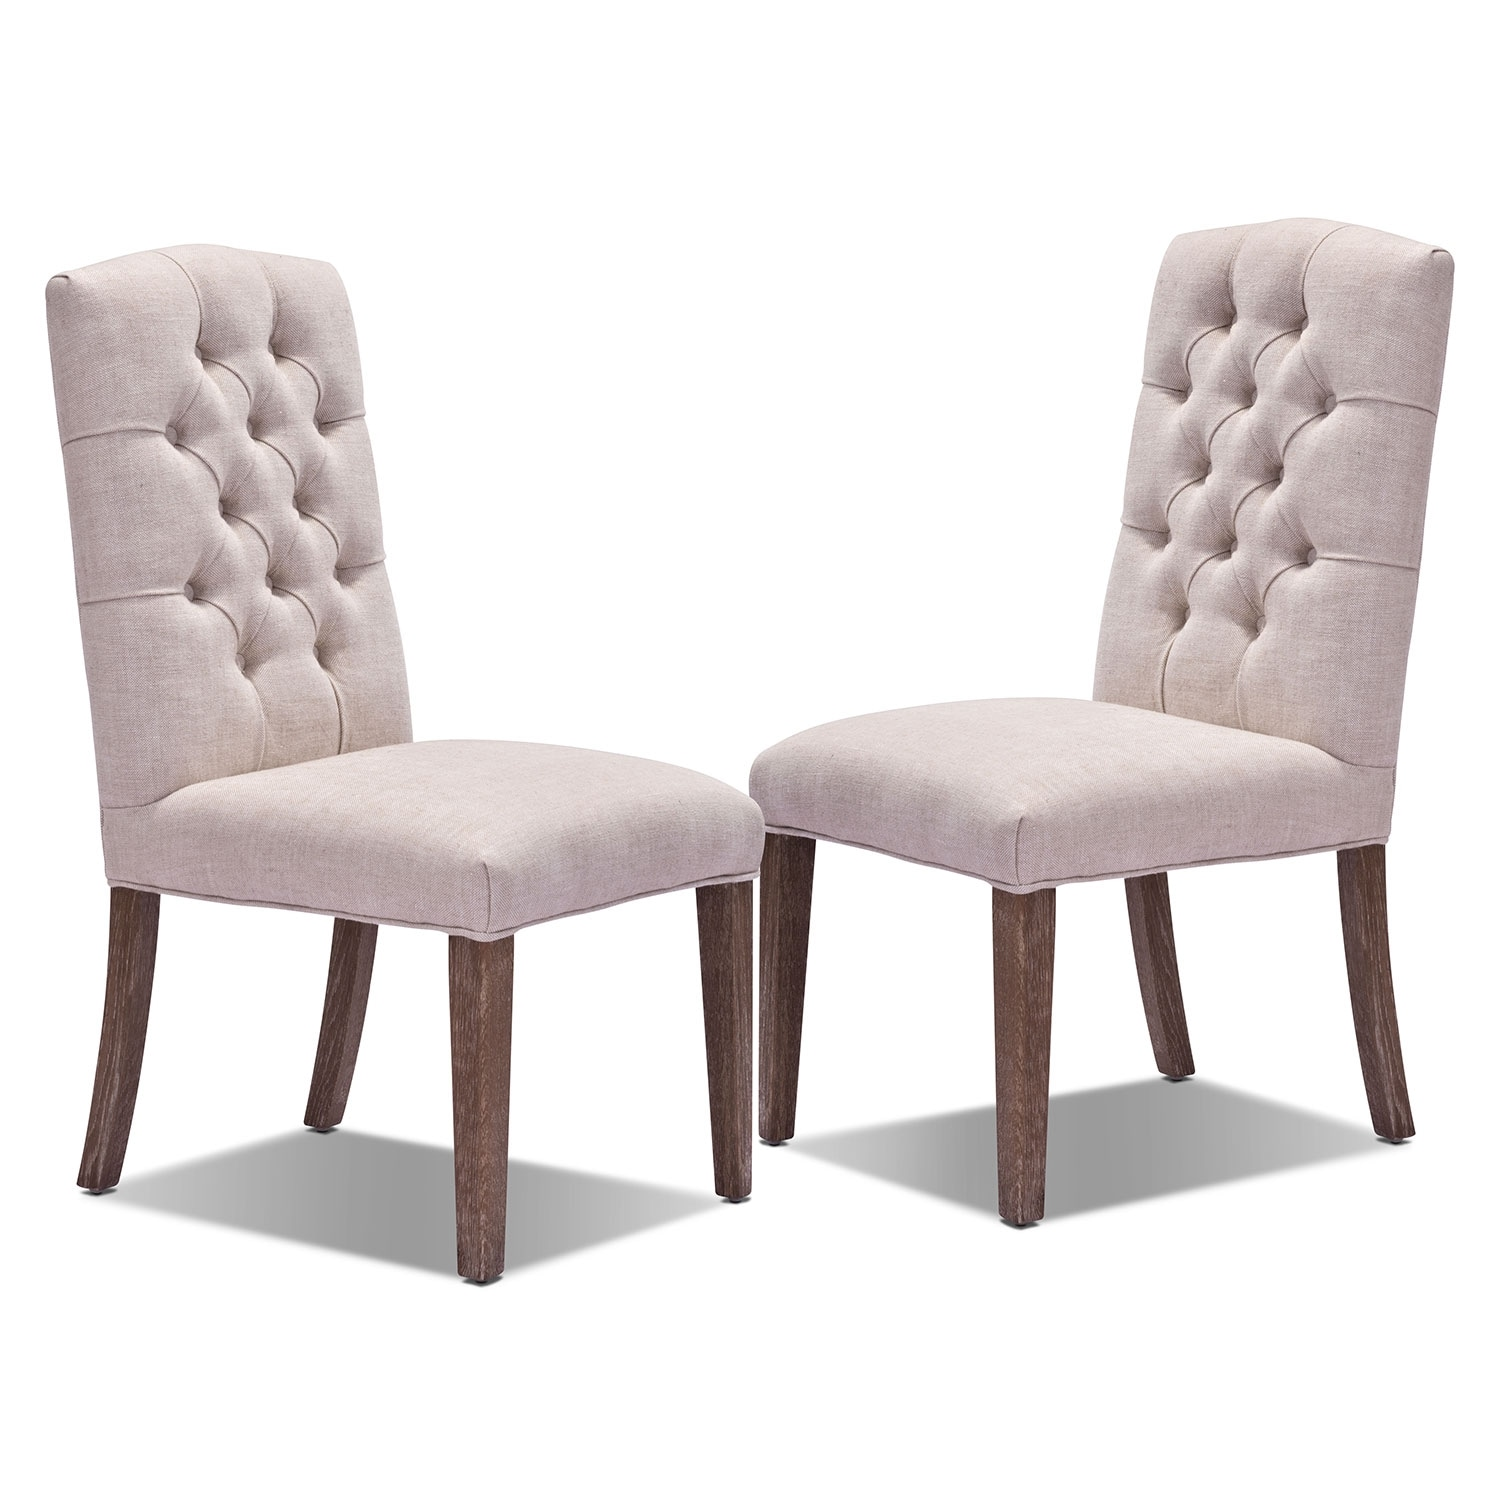 Dining room chairs seating american signature furniture for Z dining room chairs